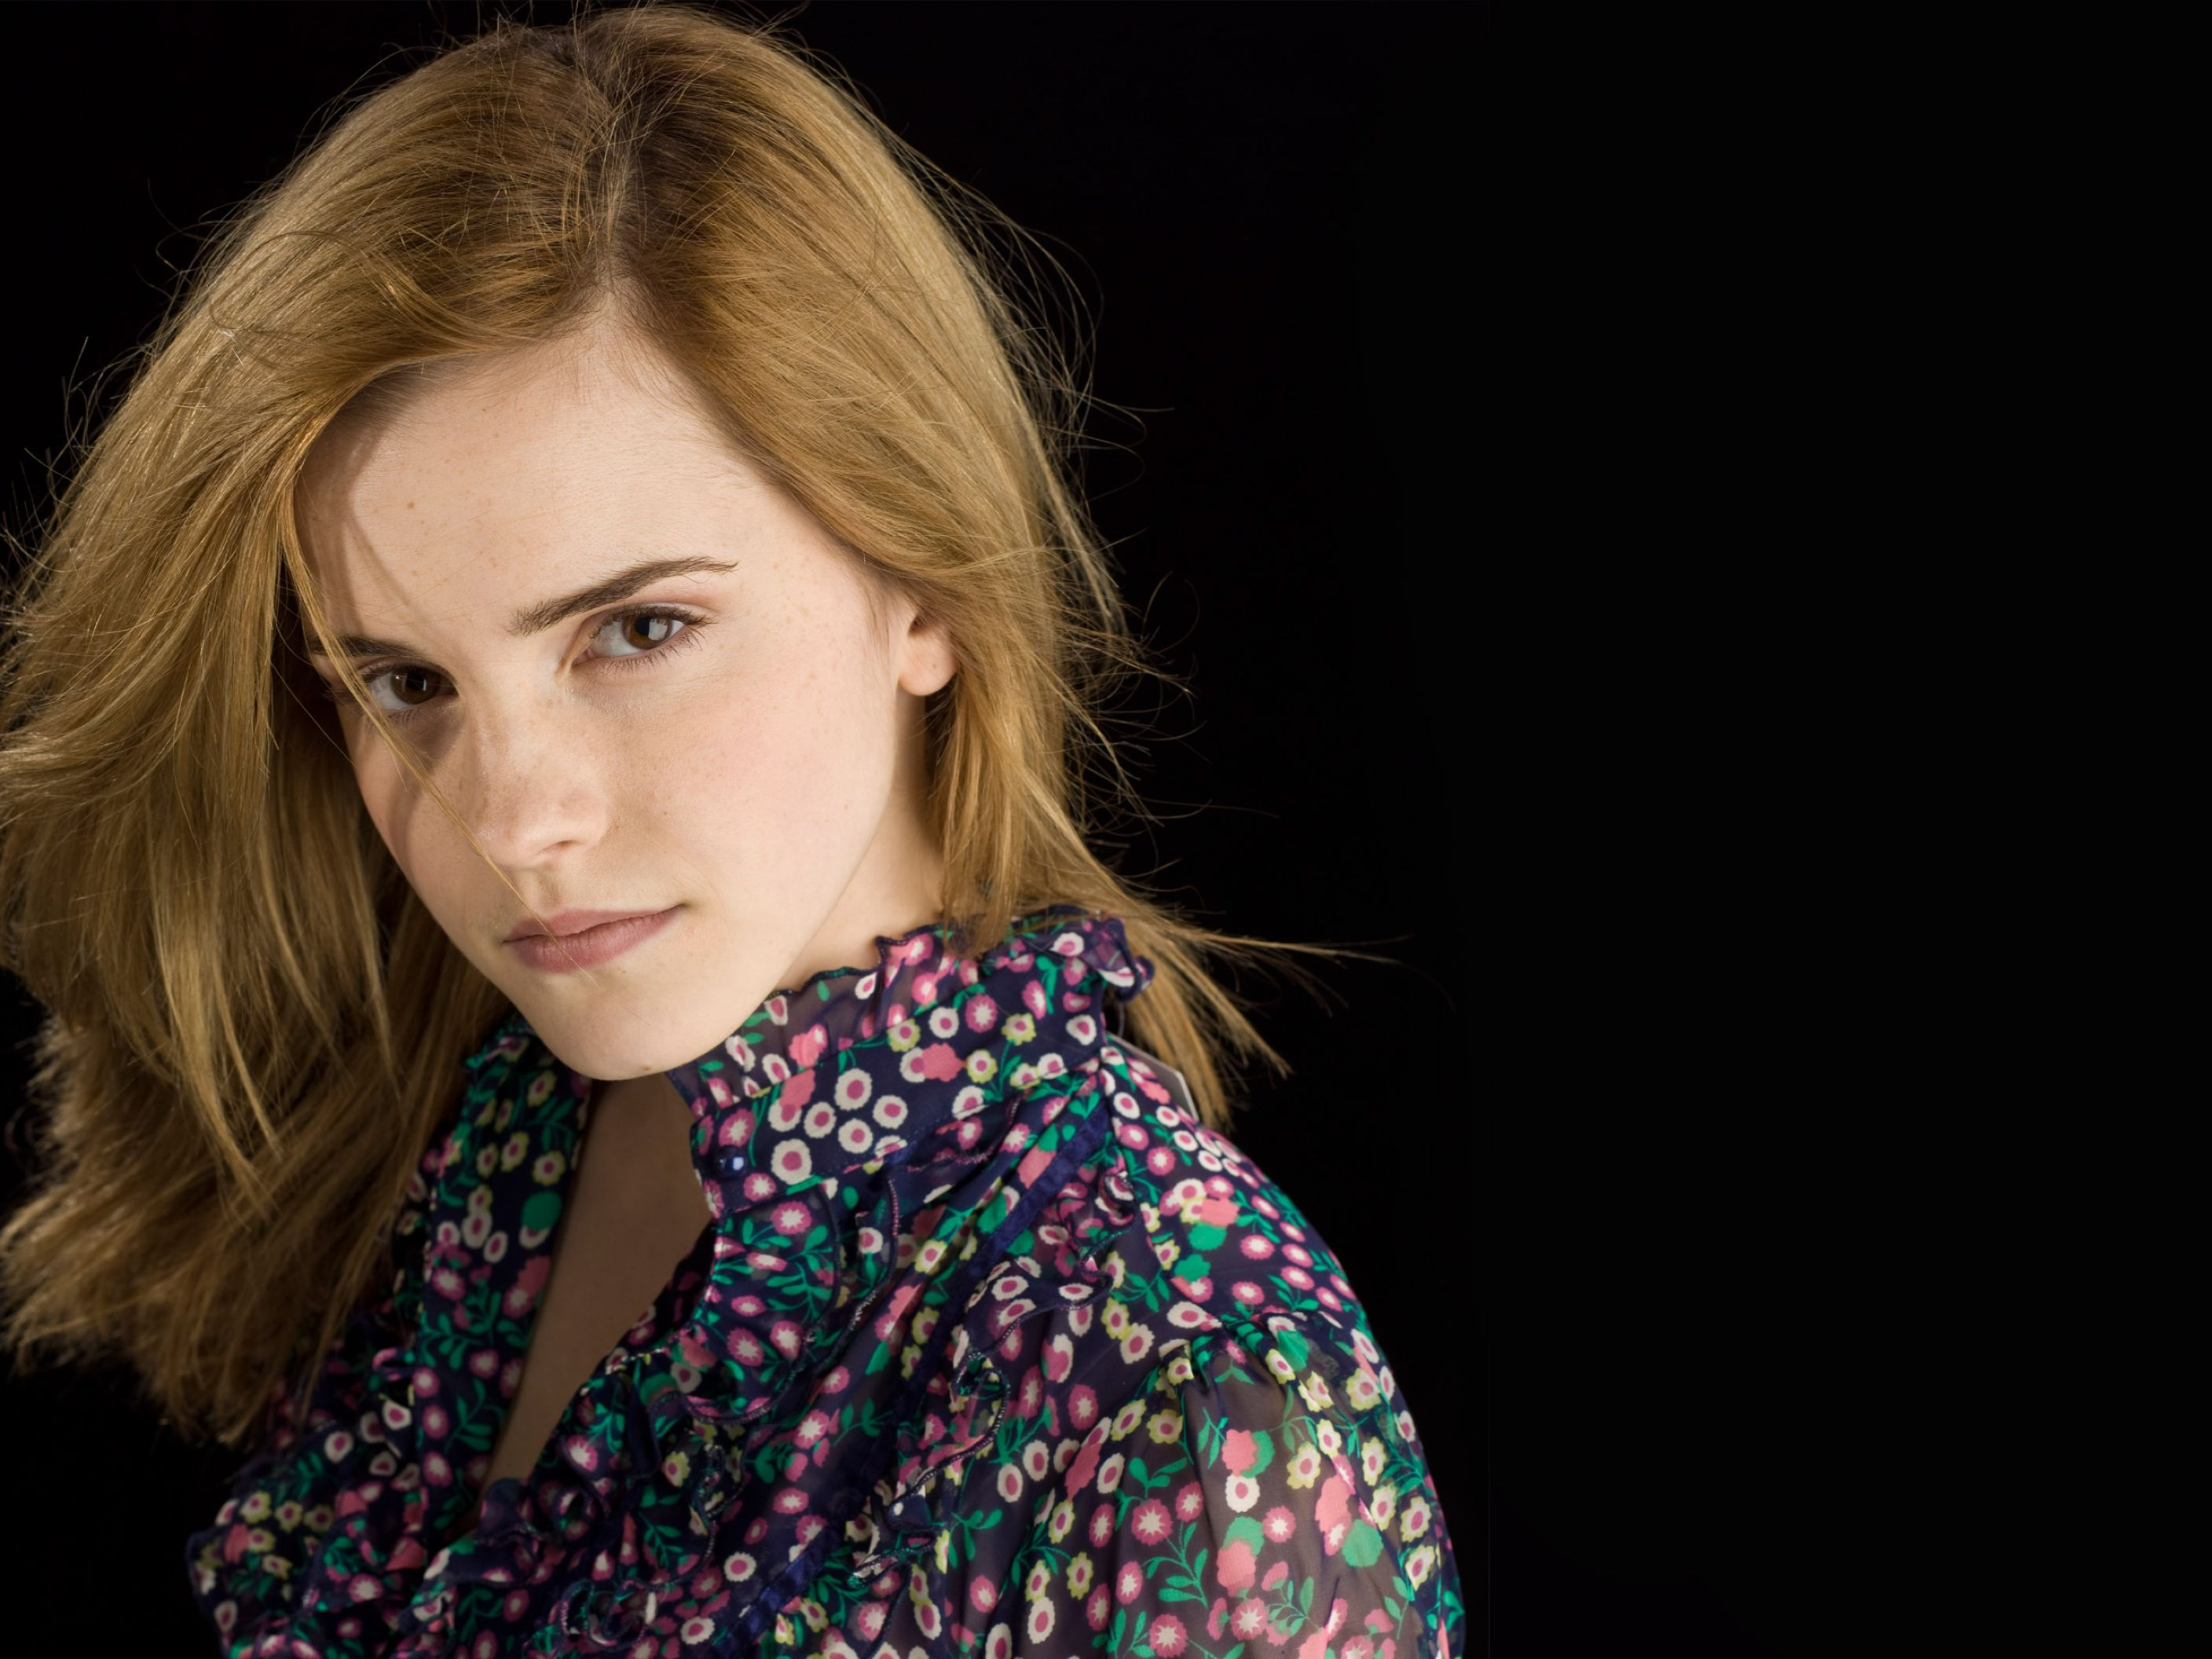 beautiful emma watson 2 normal wallpaper: desktop hd wallpaper